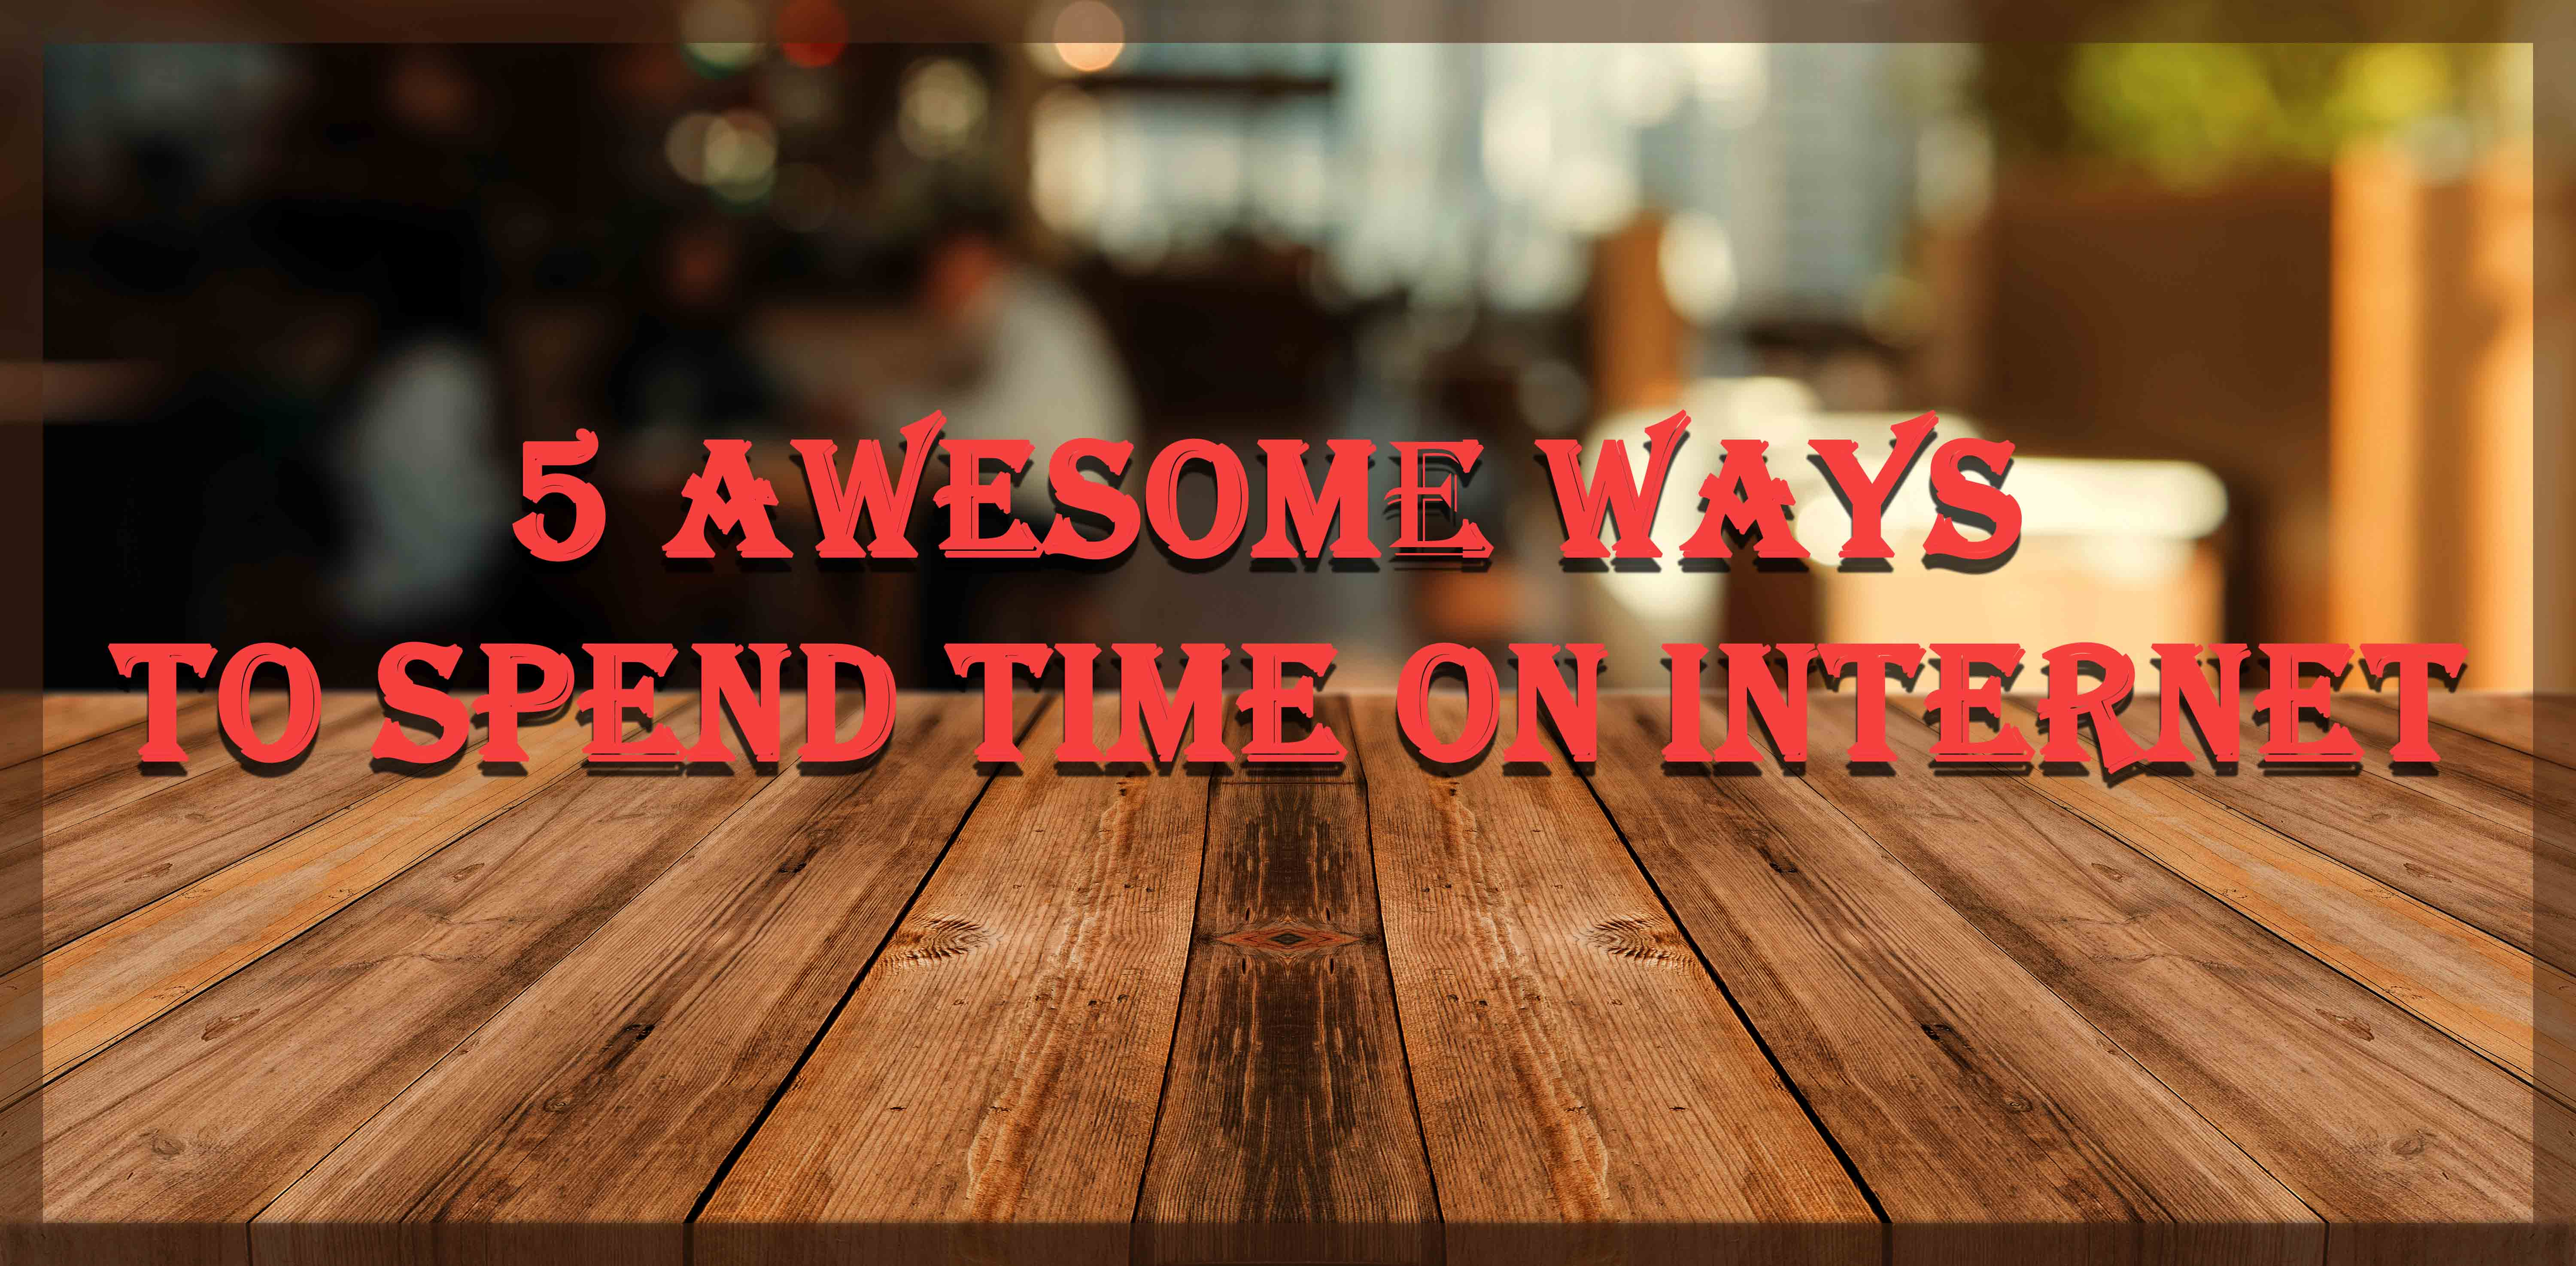 5 Awesome Ways to Spend Time on Internet